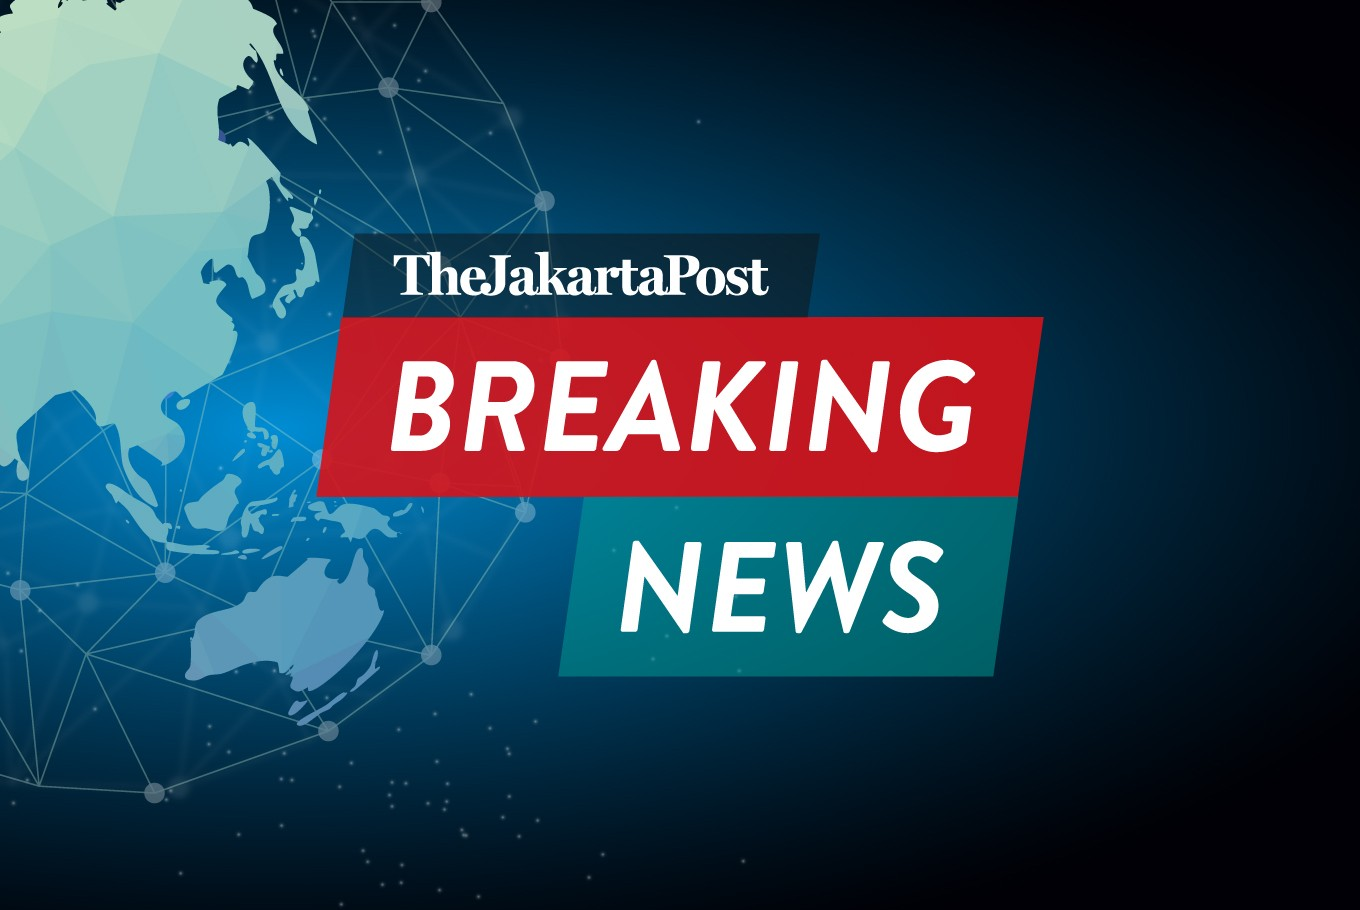 Indonesian stocks hit circuit breaker upon opening in second day of trading halt